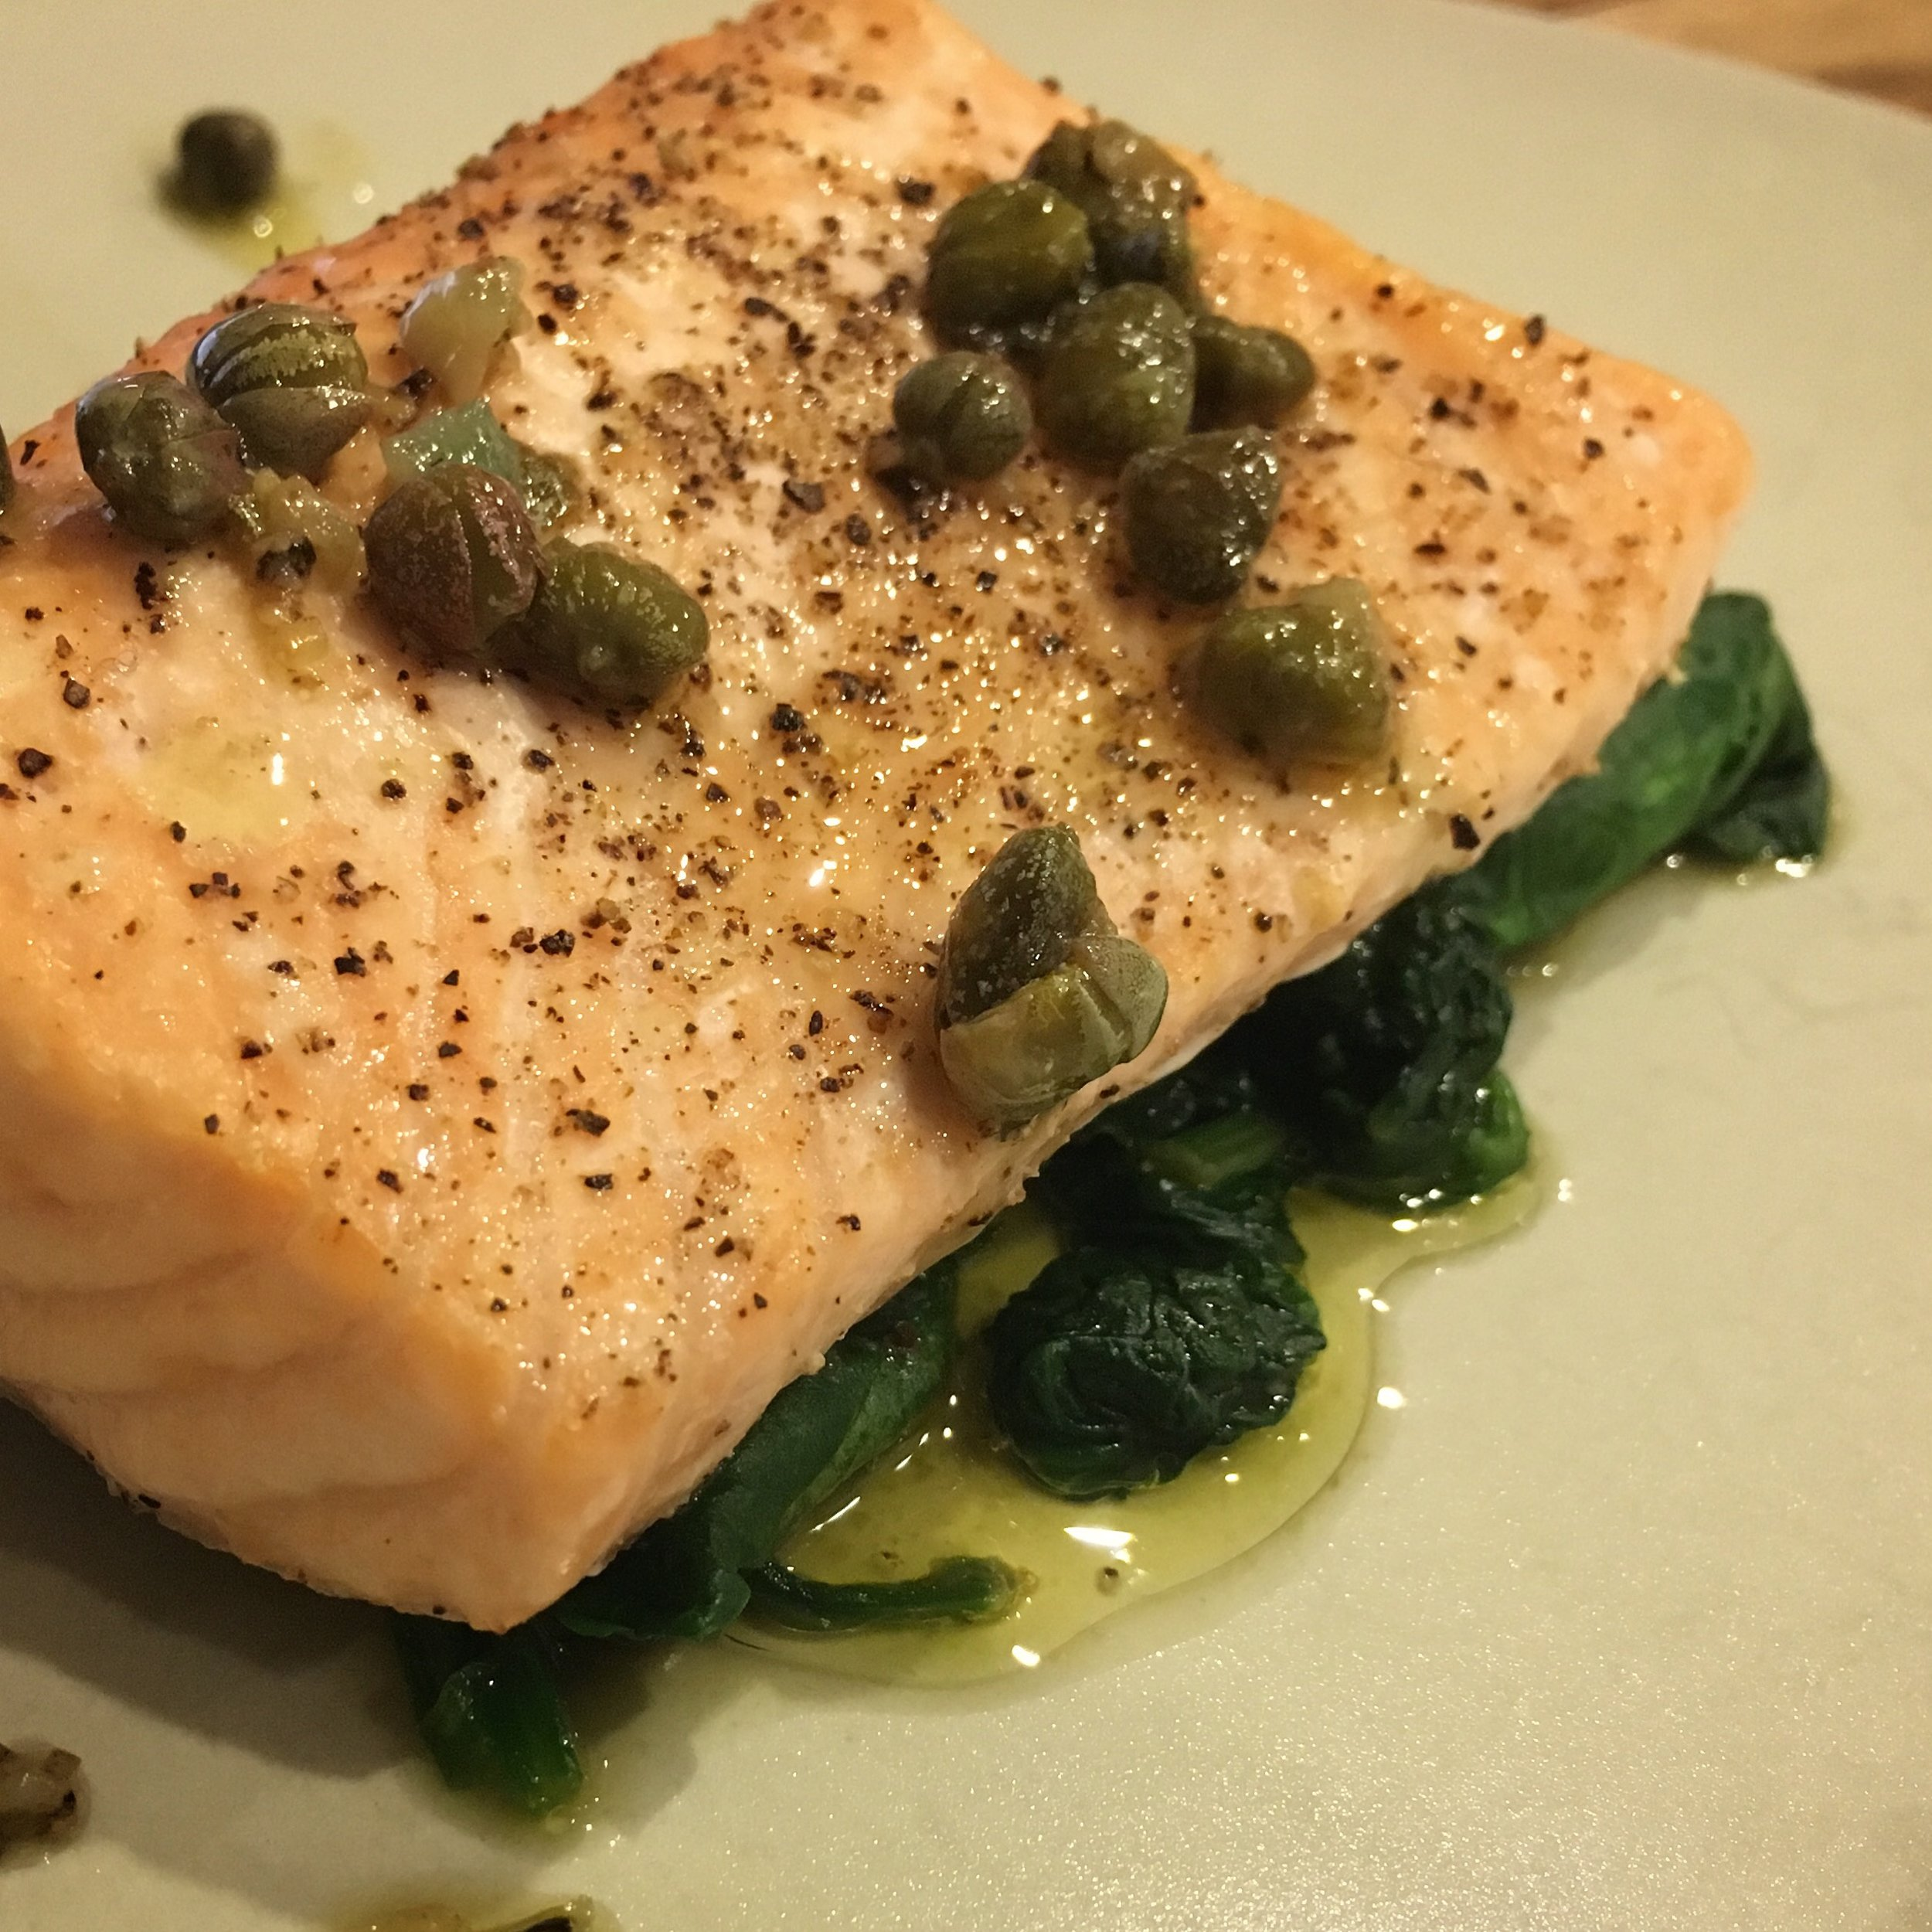 grilled salmon recipe with lemon butter sauce